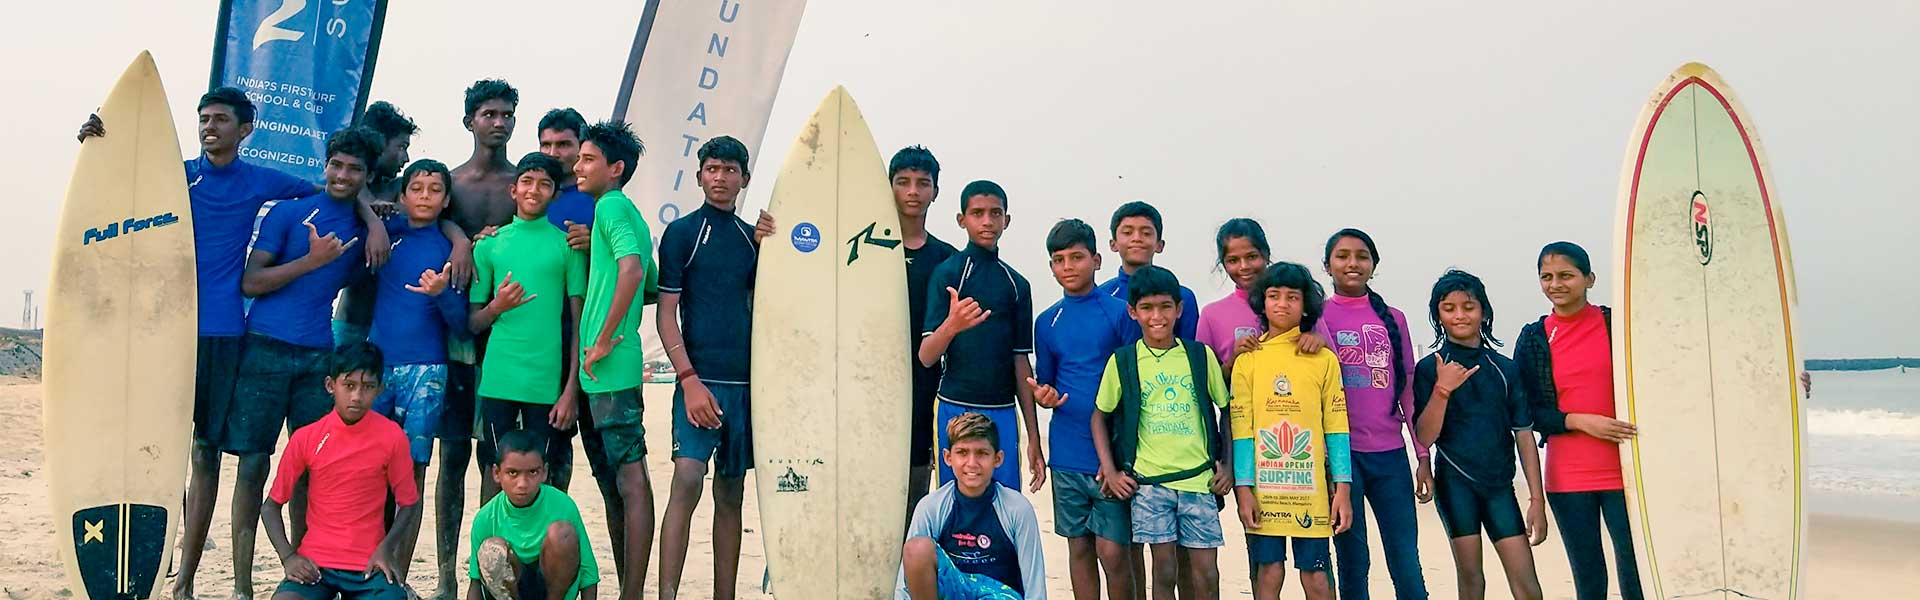 gromsearch-banner